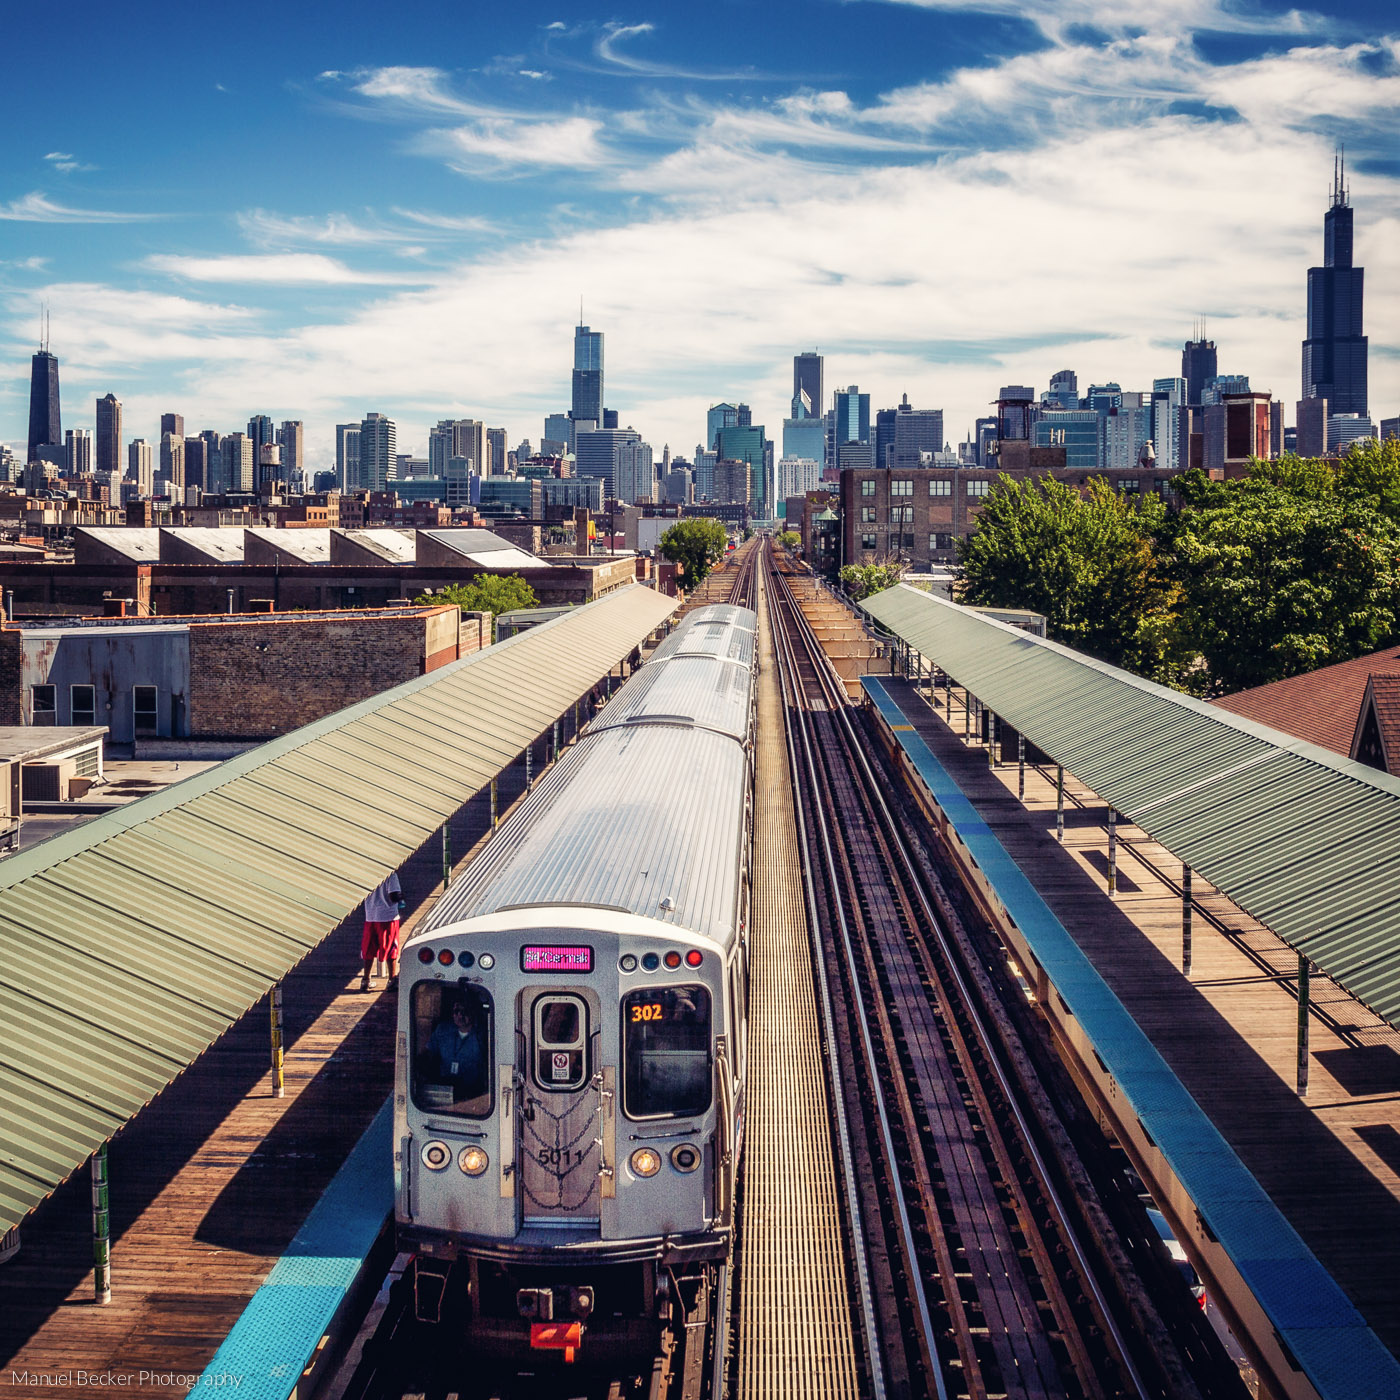 Skyline view from CTA station, Chicago, USA